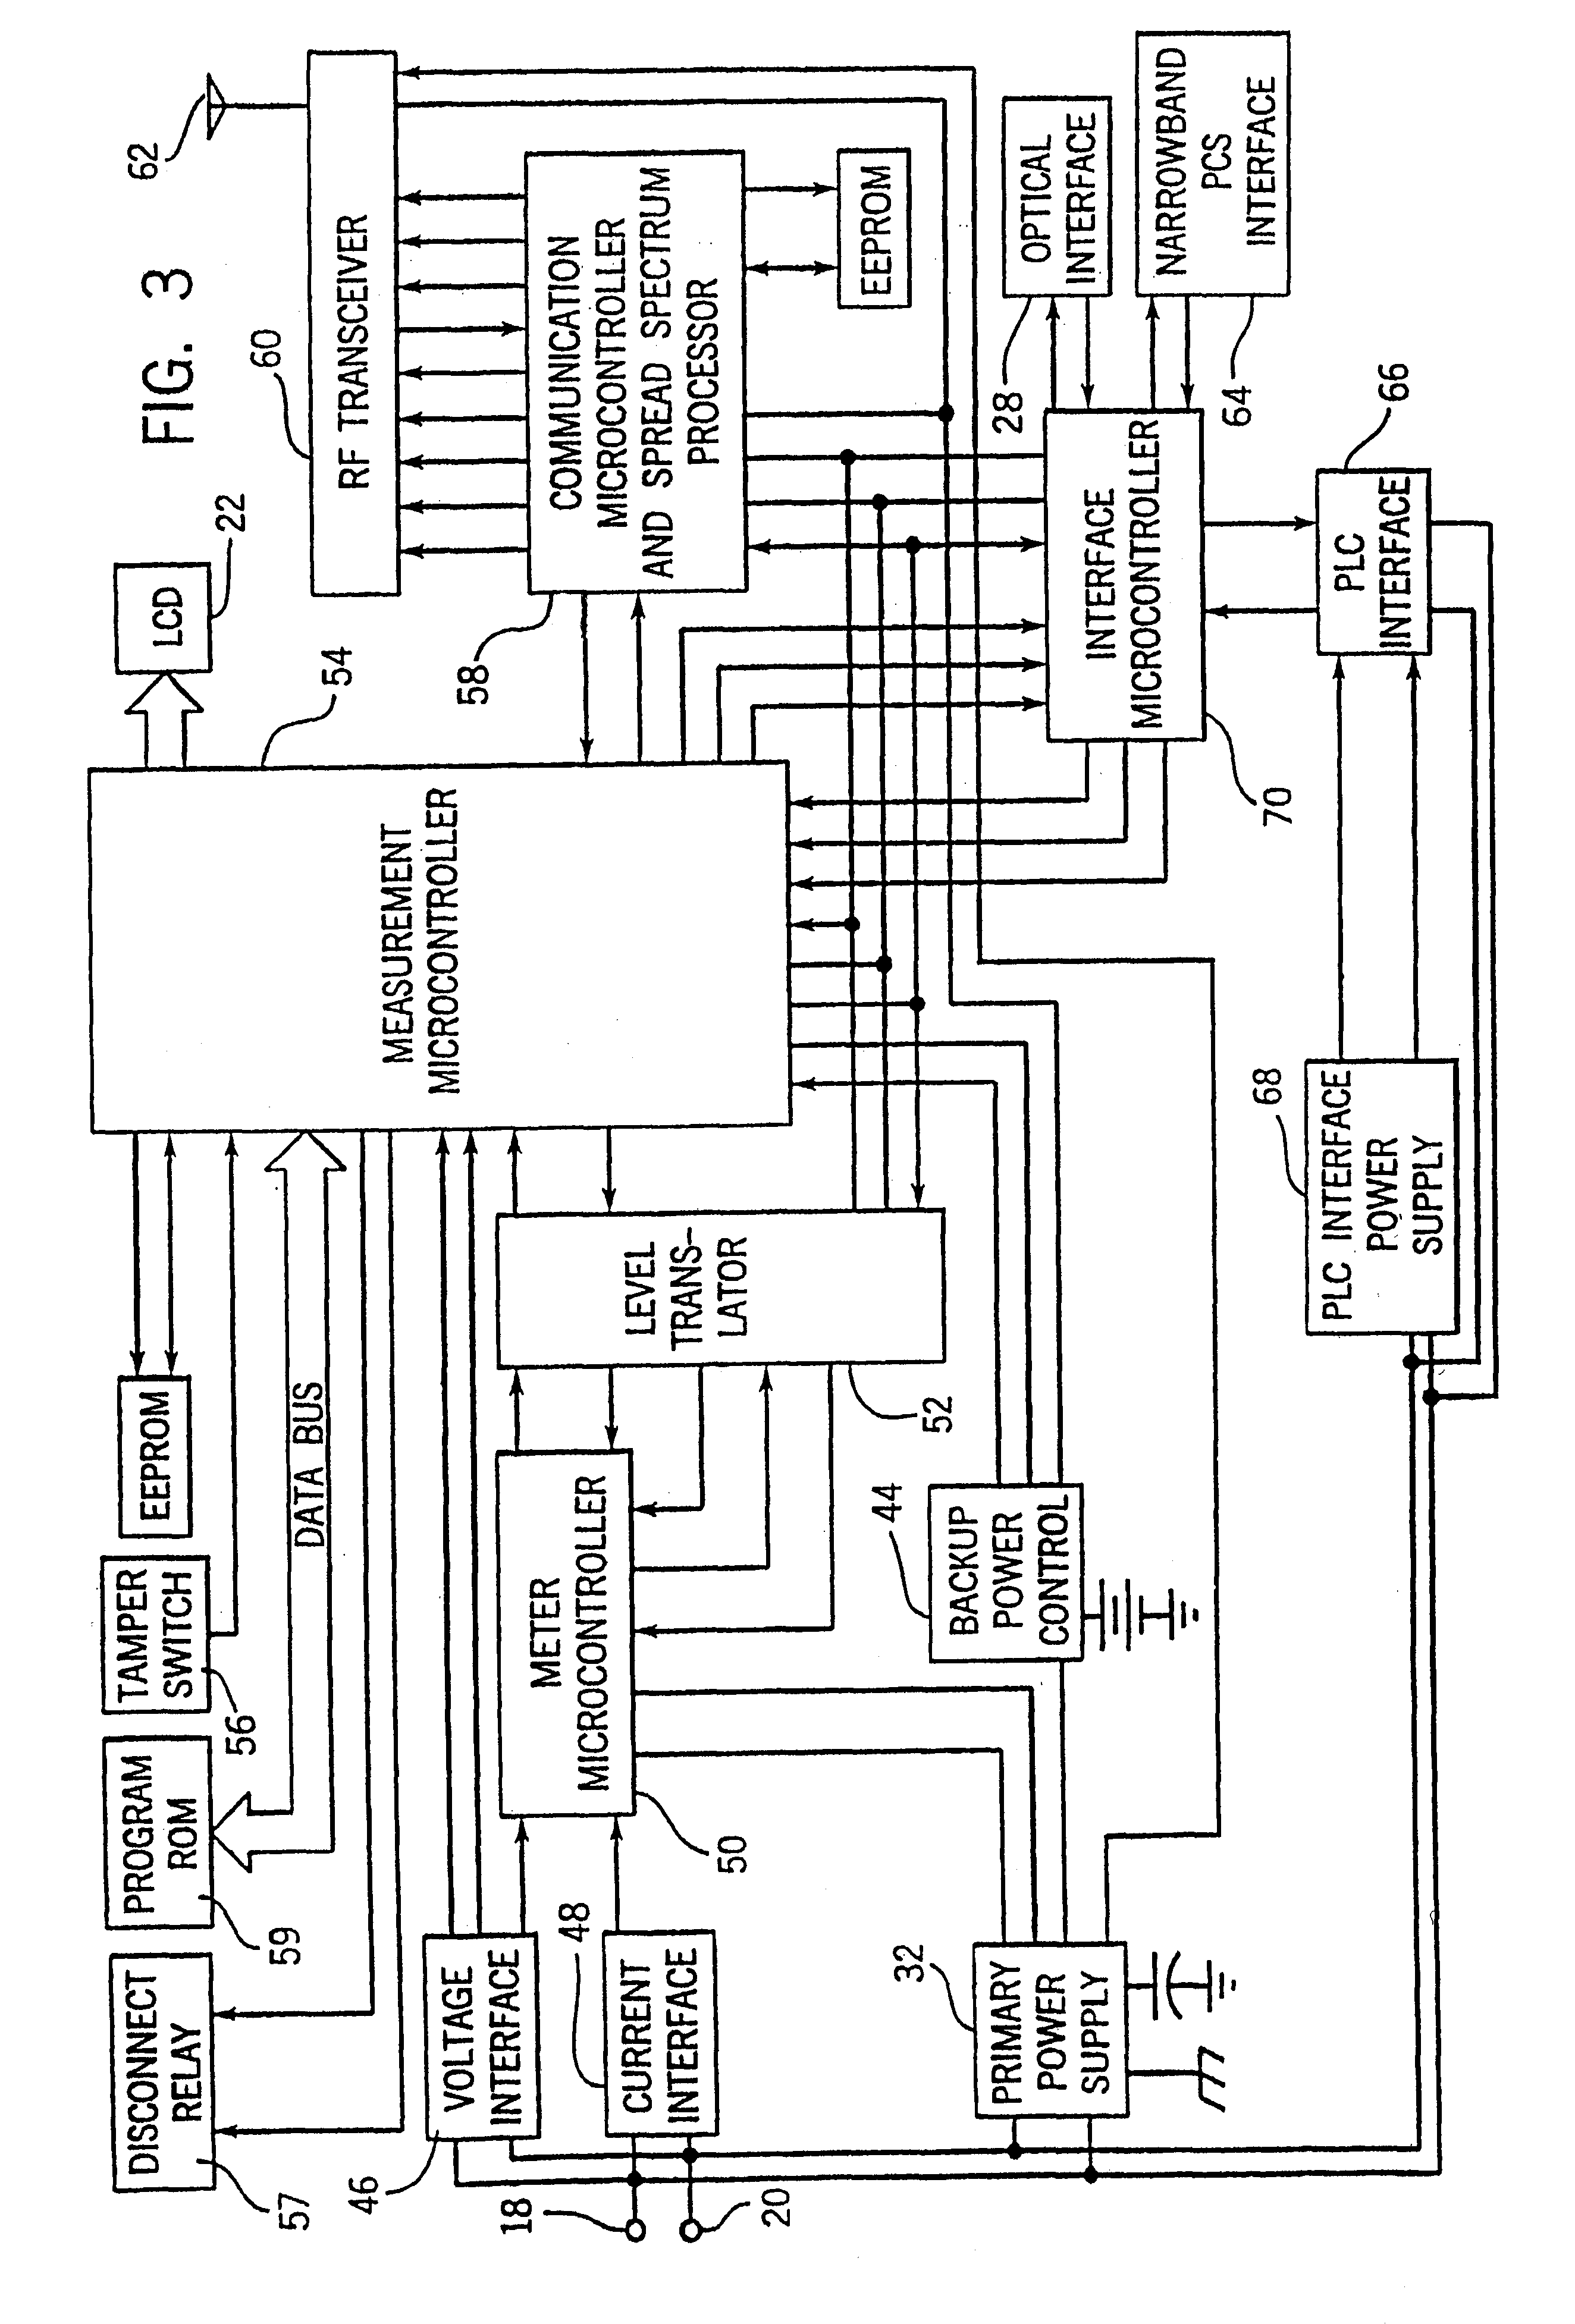 patent us6538577 electronic electric meter for networked meter patent drawing